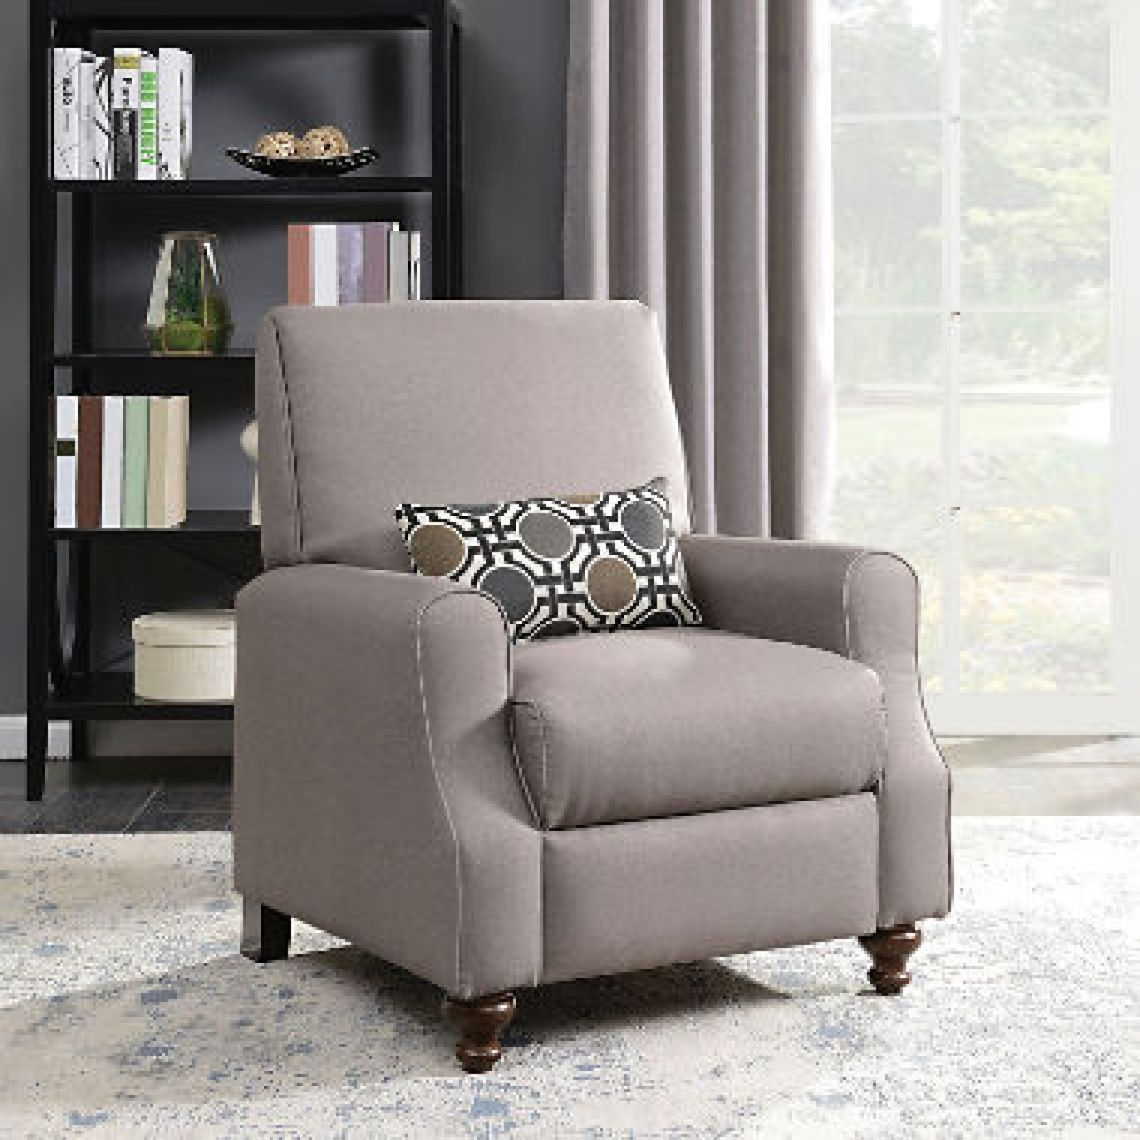 Shelby High Leg Recliner with Kidney Accent Pillow - Sam's Club